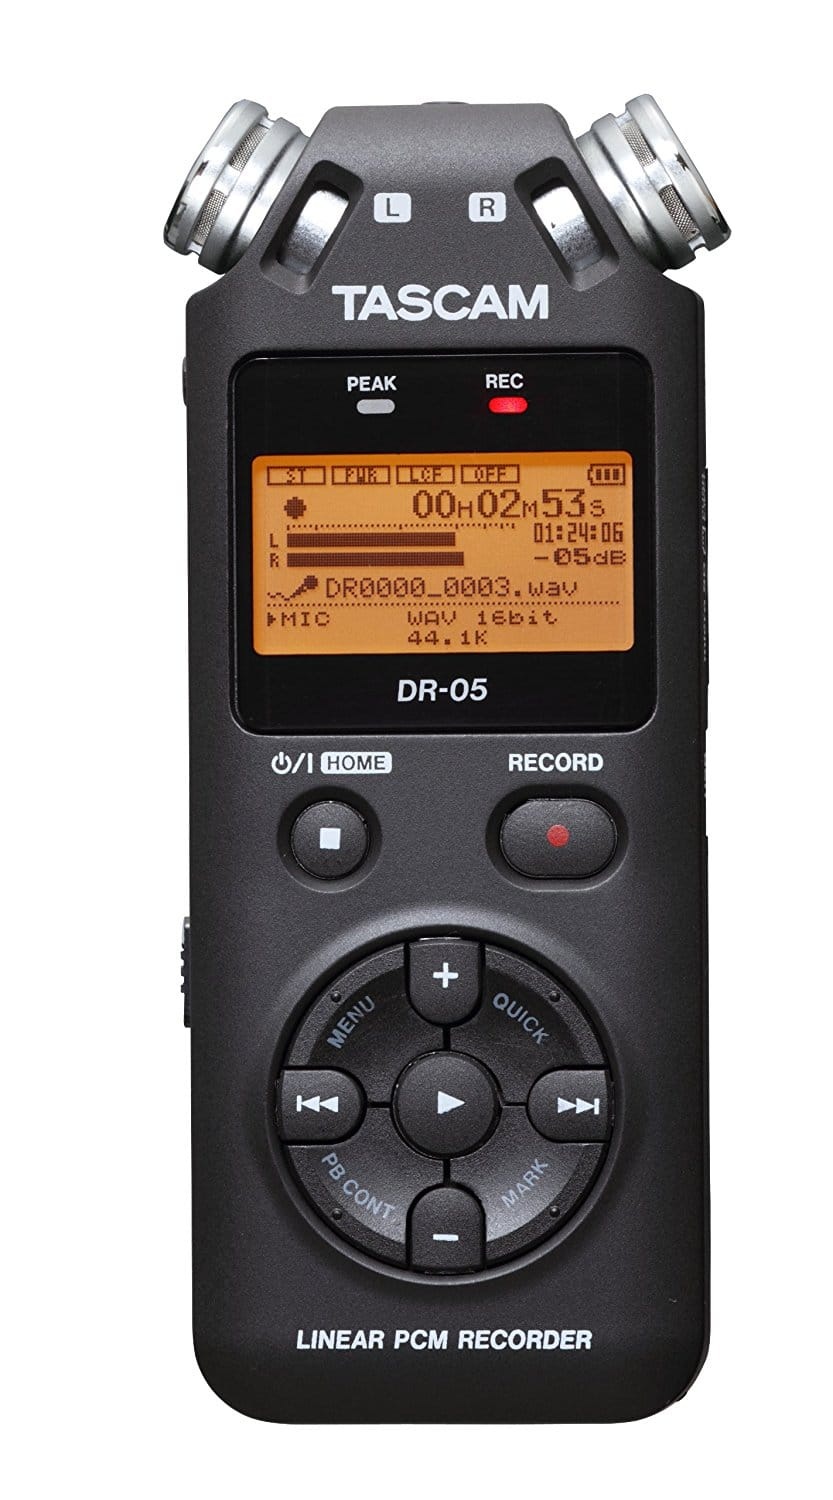 Tascam DR-05 Portable Digital Recorder (lowest price with free shipping) $79.99